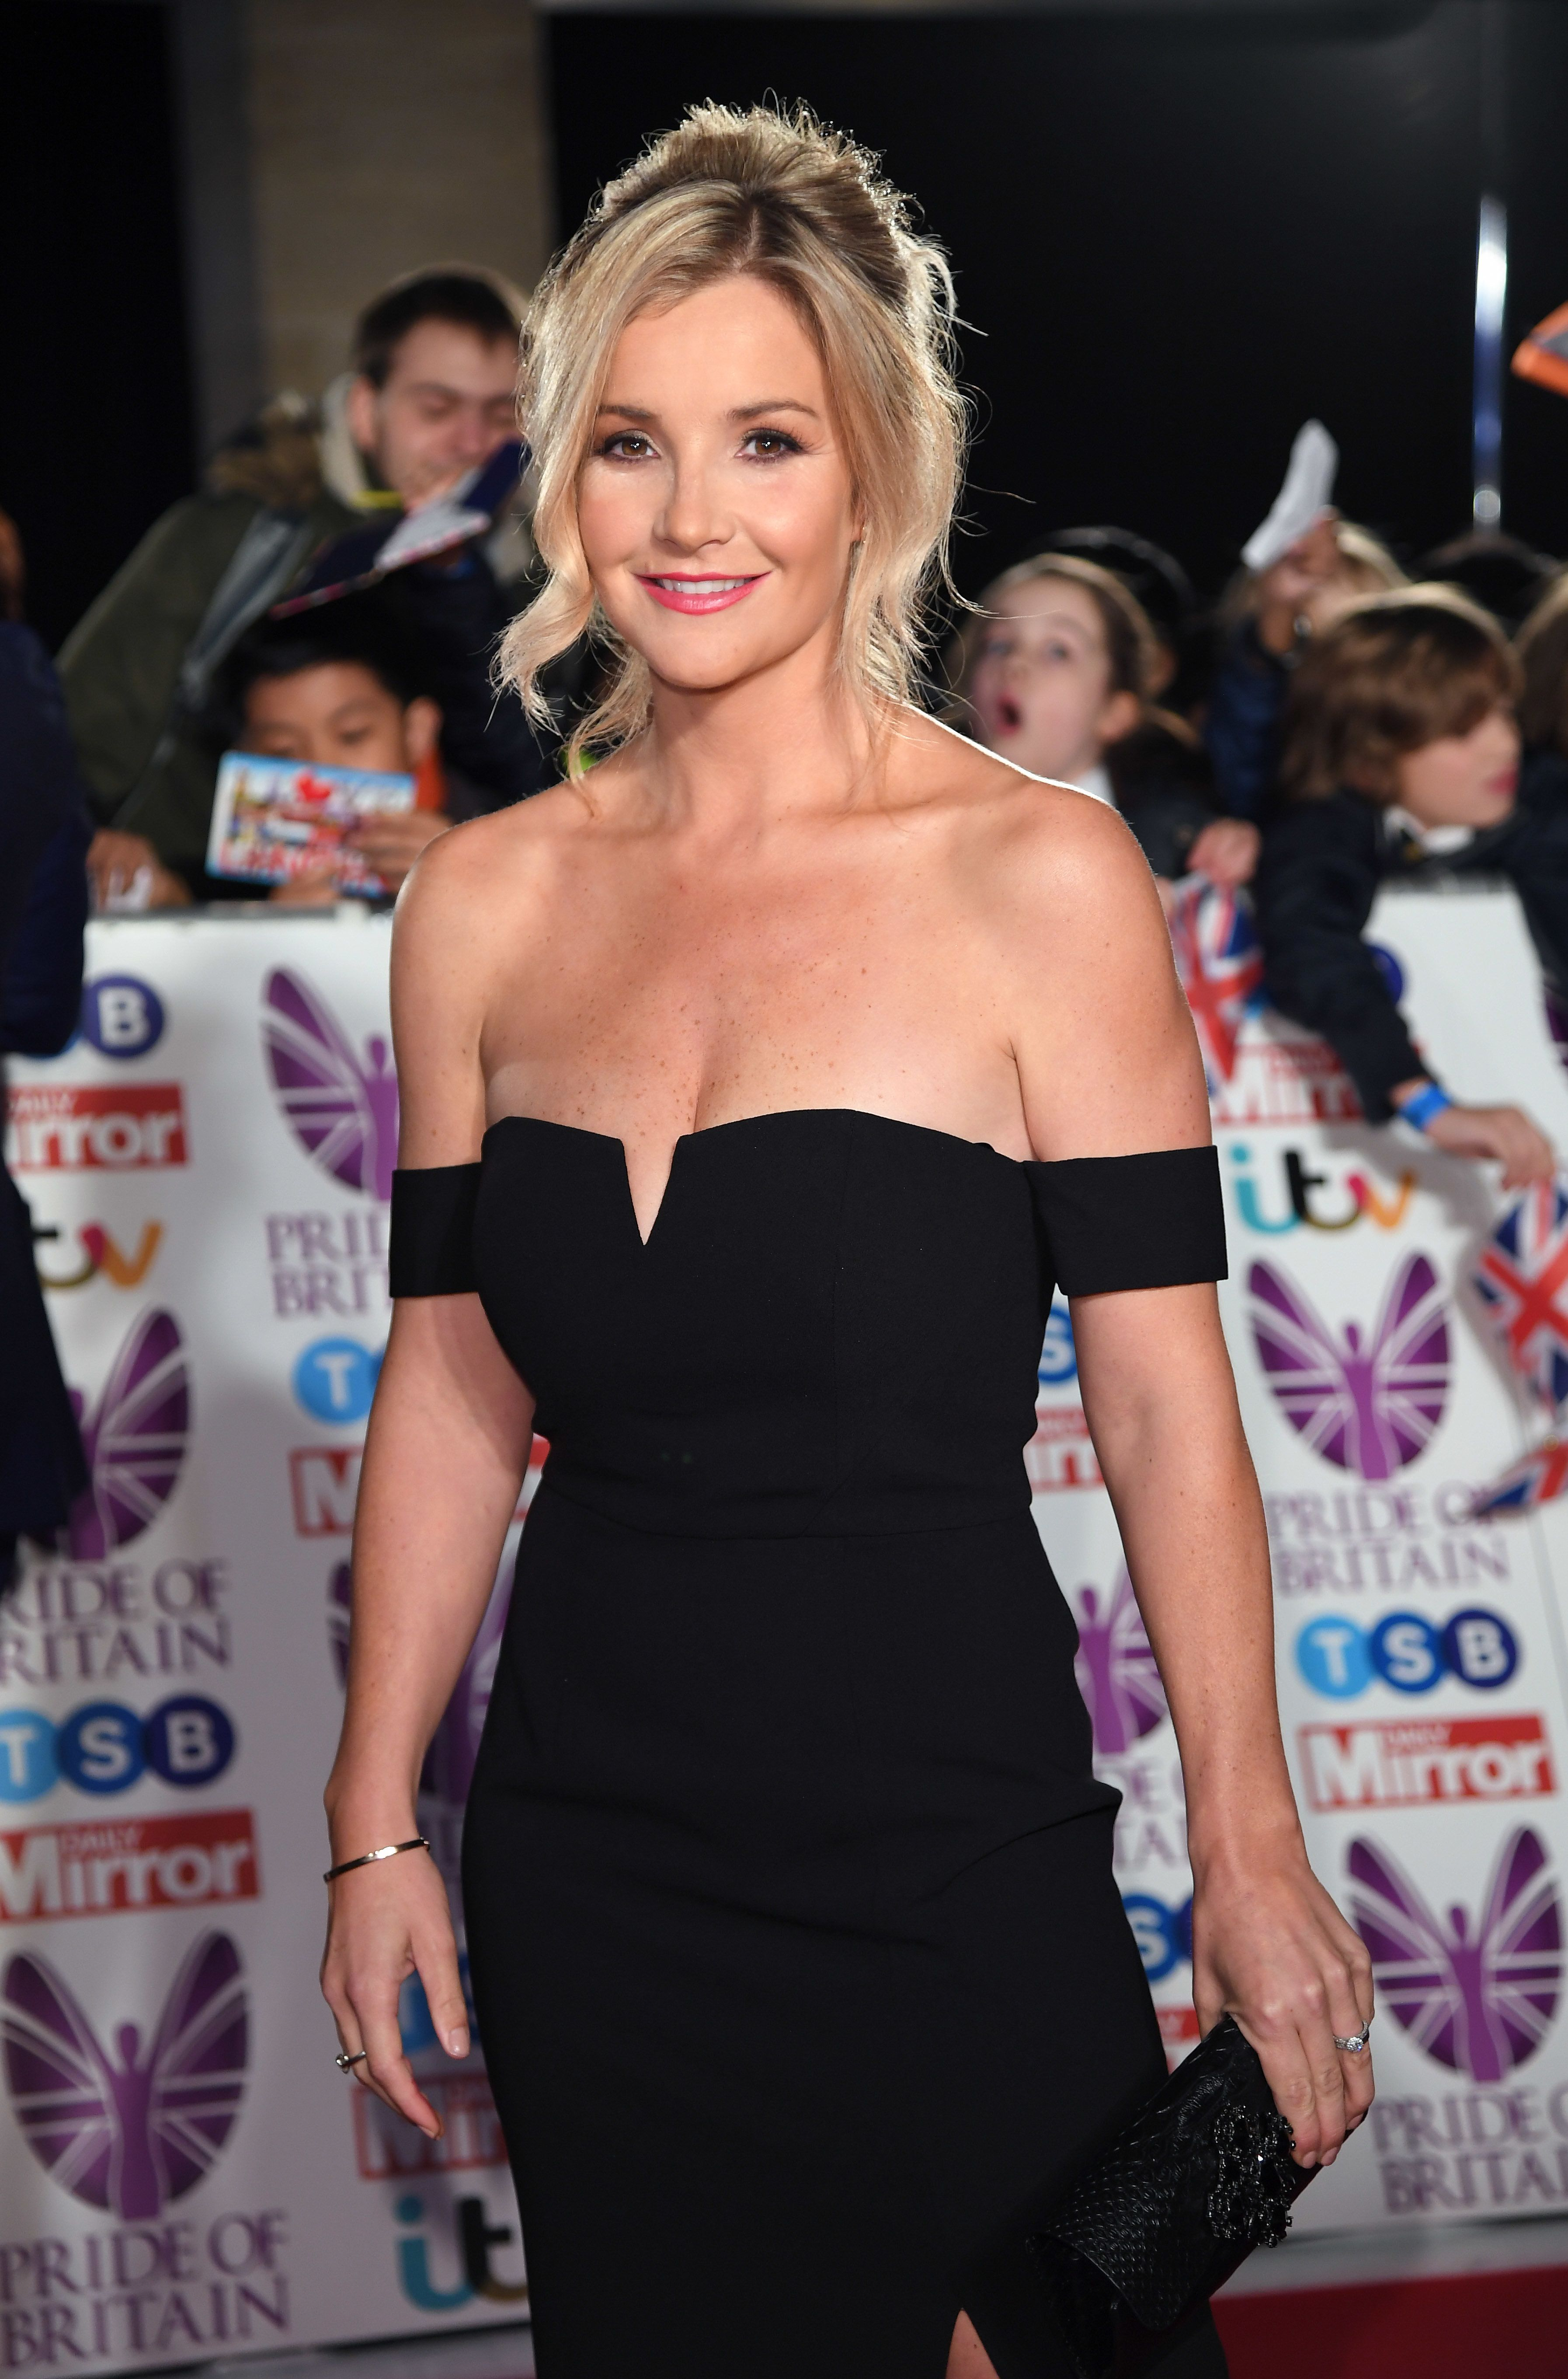 Helen Skelton Shares Her Experiences Of Being 'Groped' Live On Air While